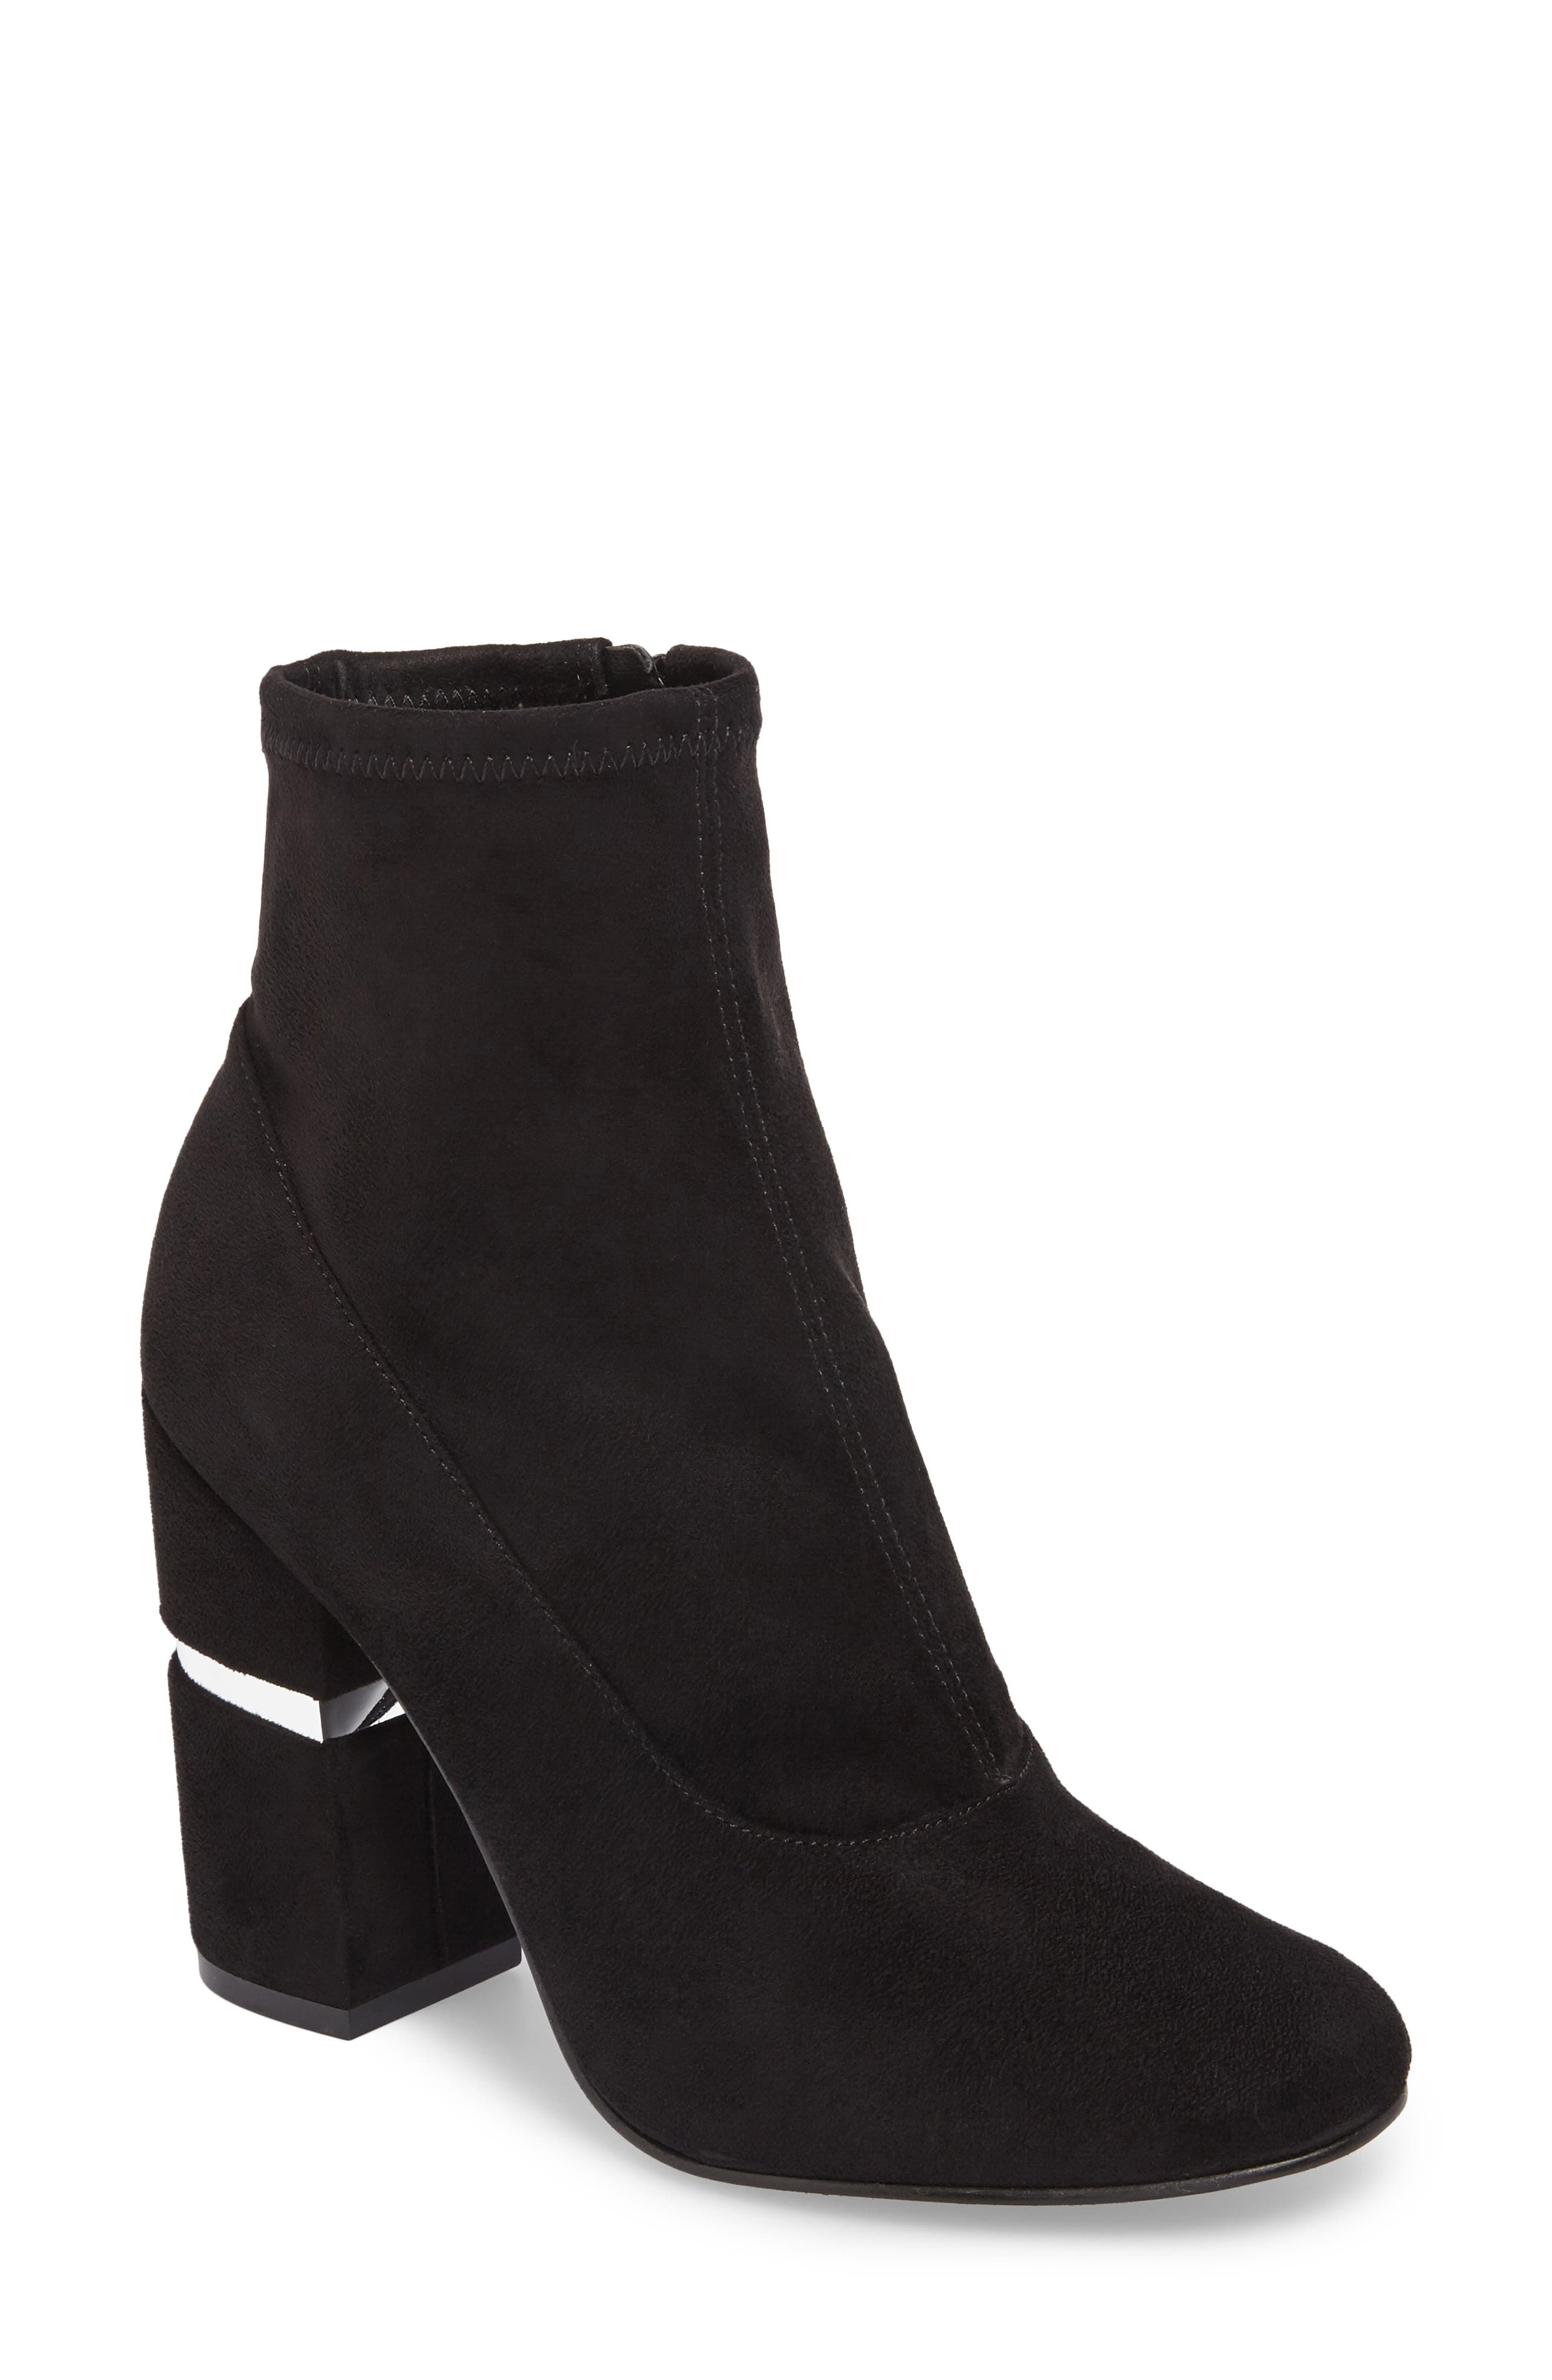 Padda Embellished Stretch Bootie,                             Main thumbnail 1, color,                             001